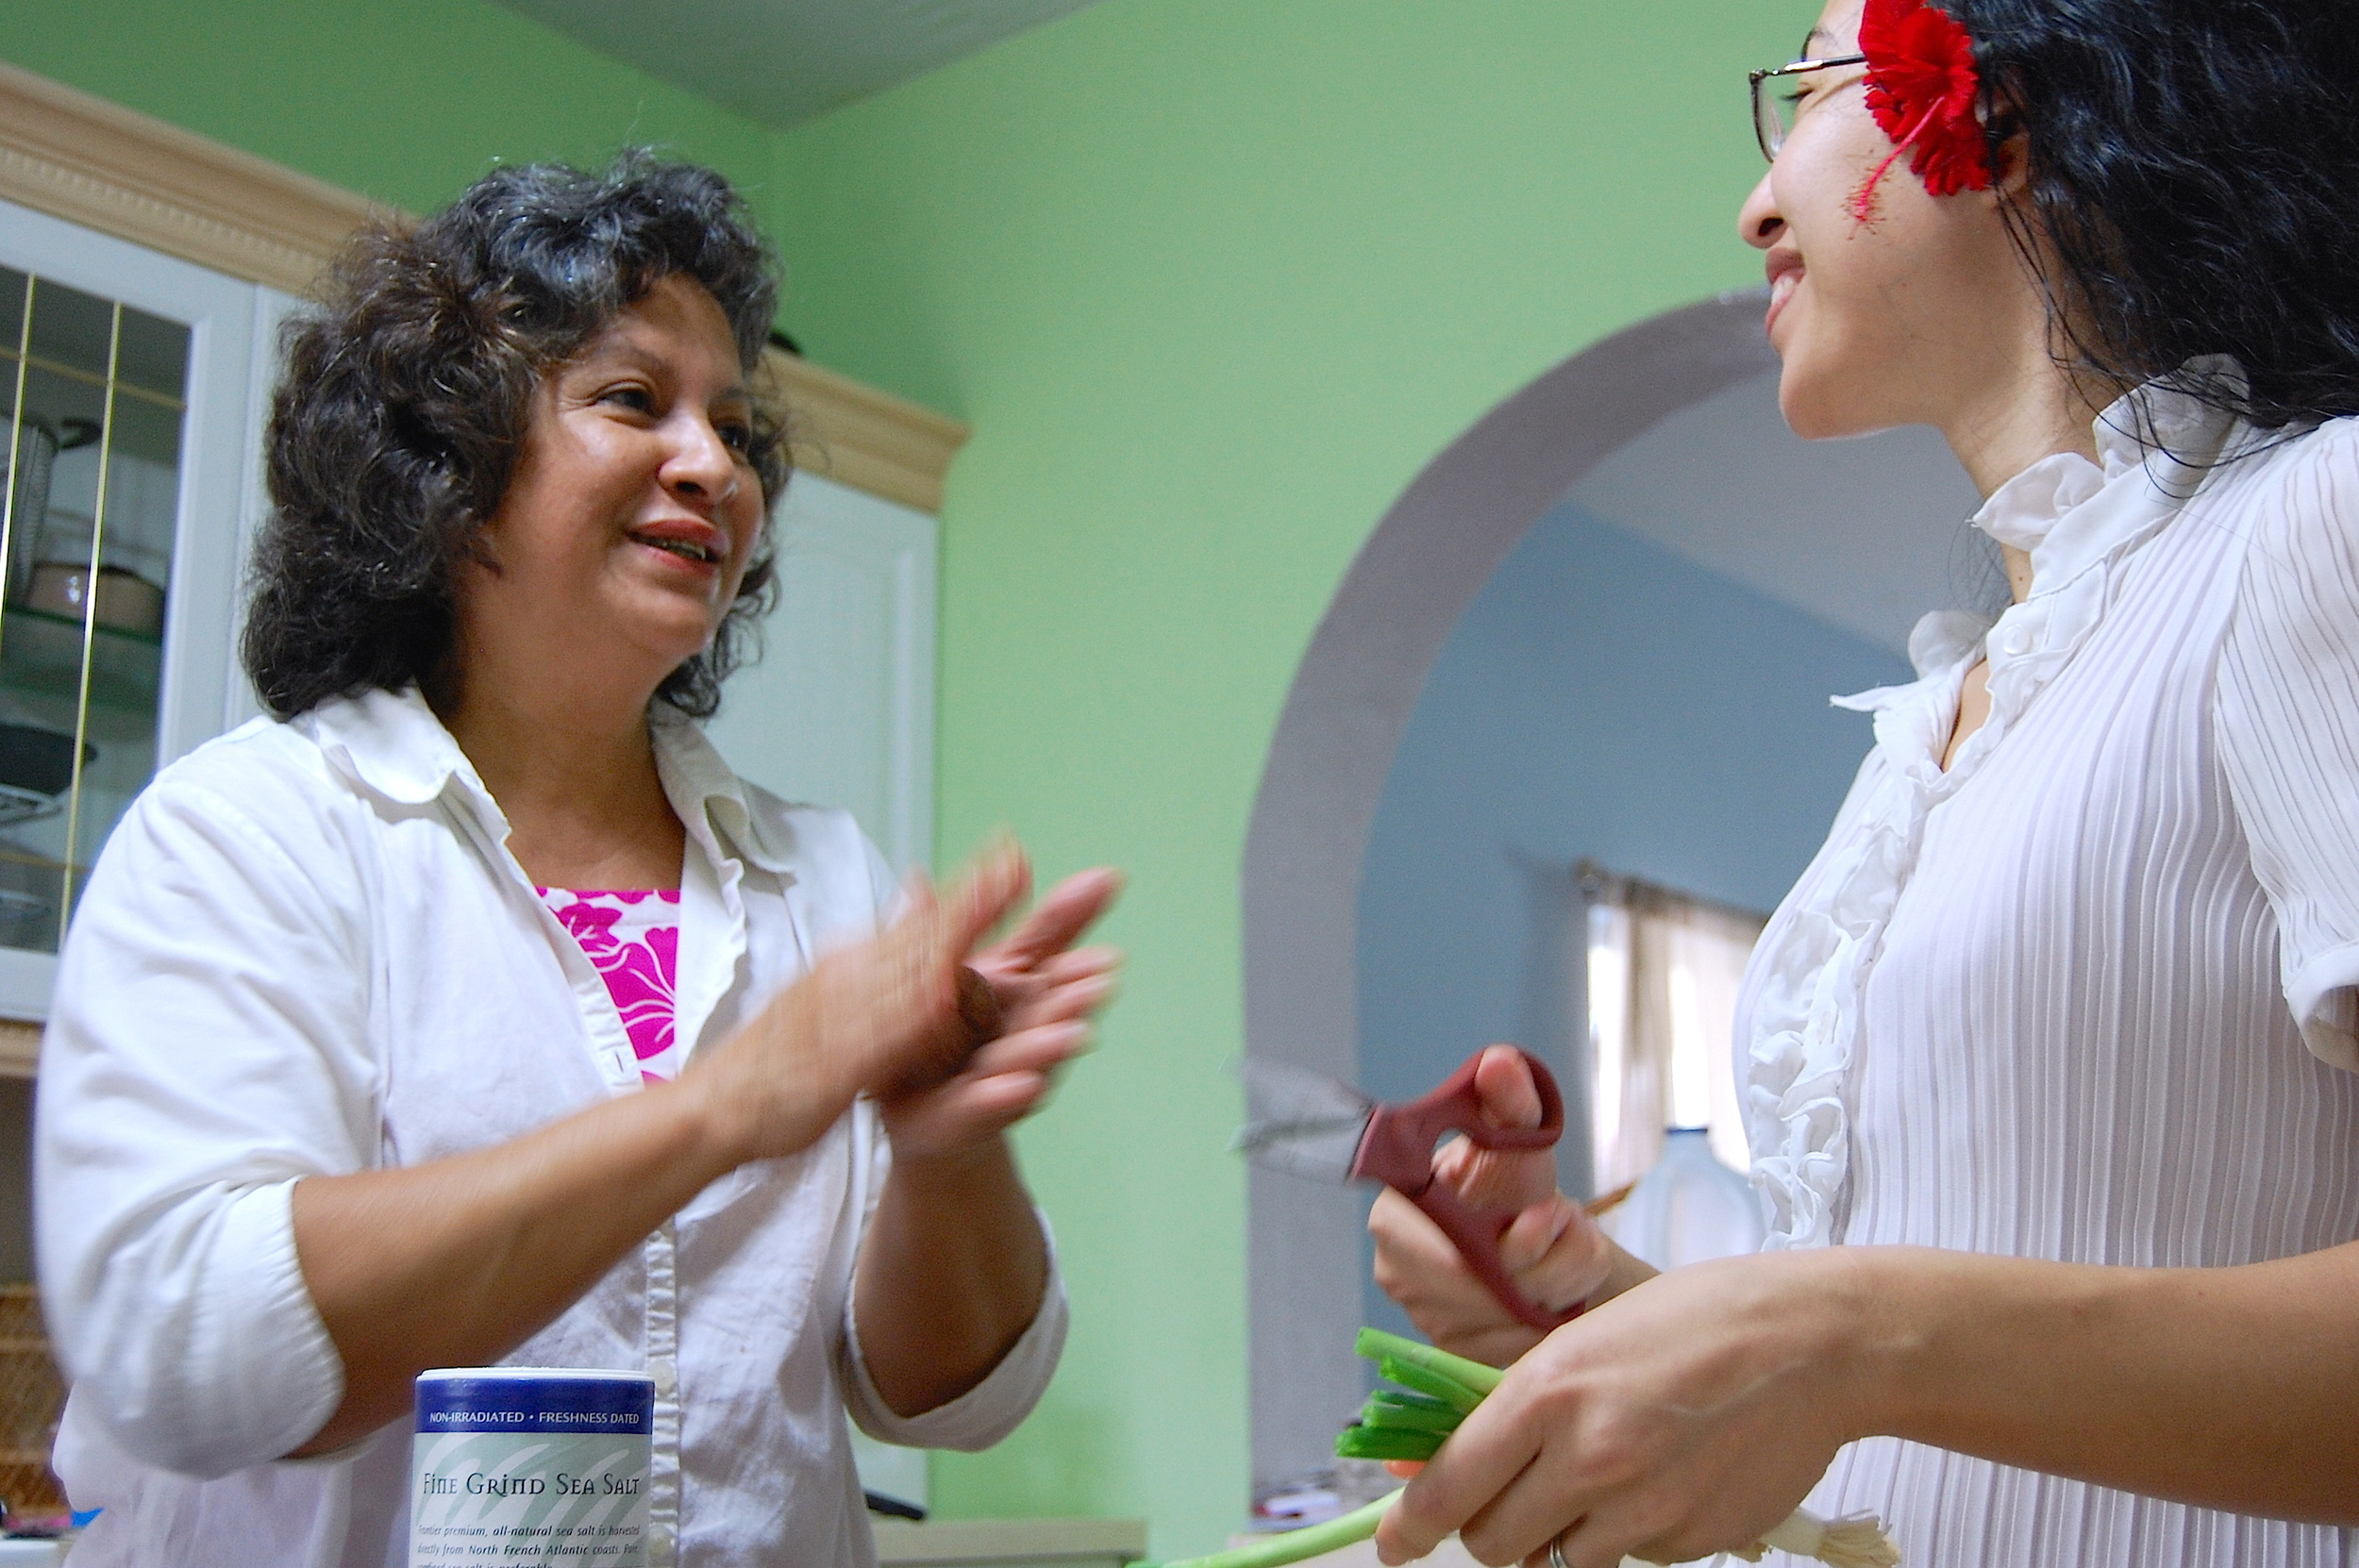 Heistheway (7 then) snapped this picture of Mom and I cooking